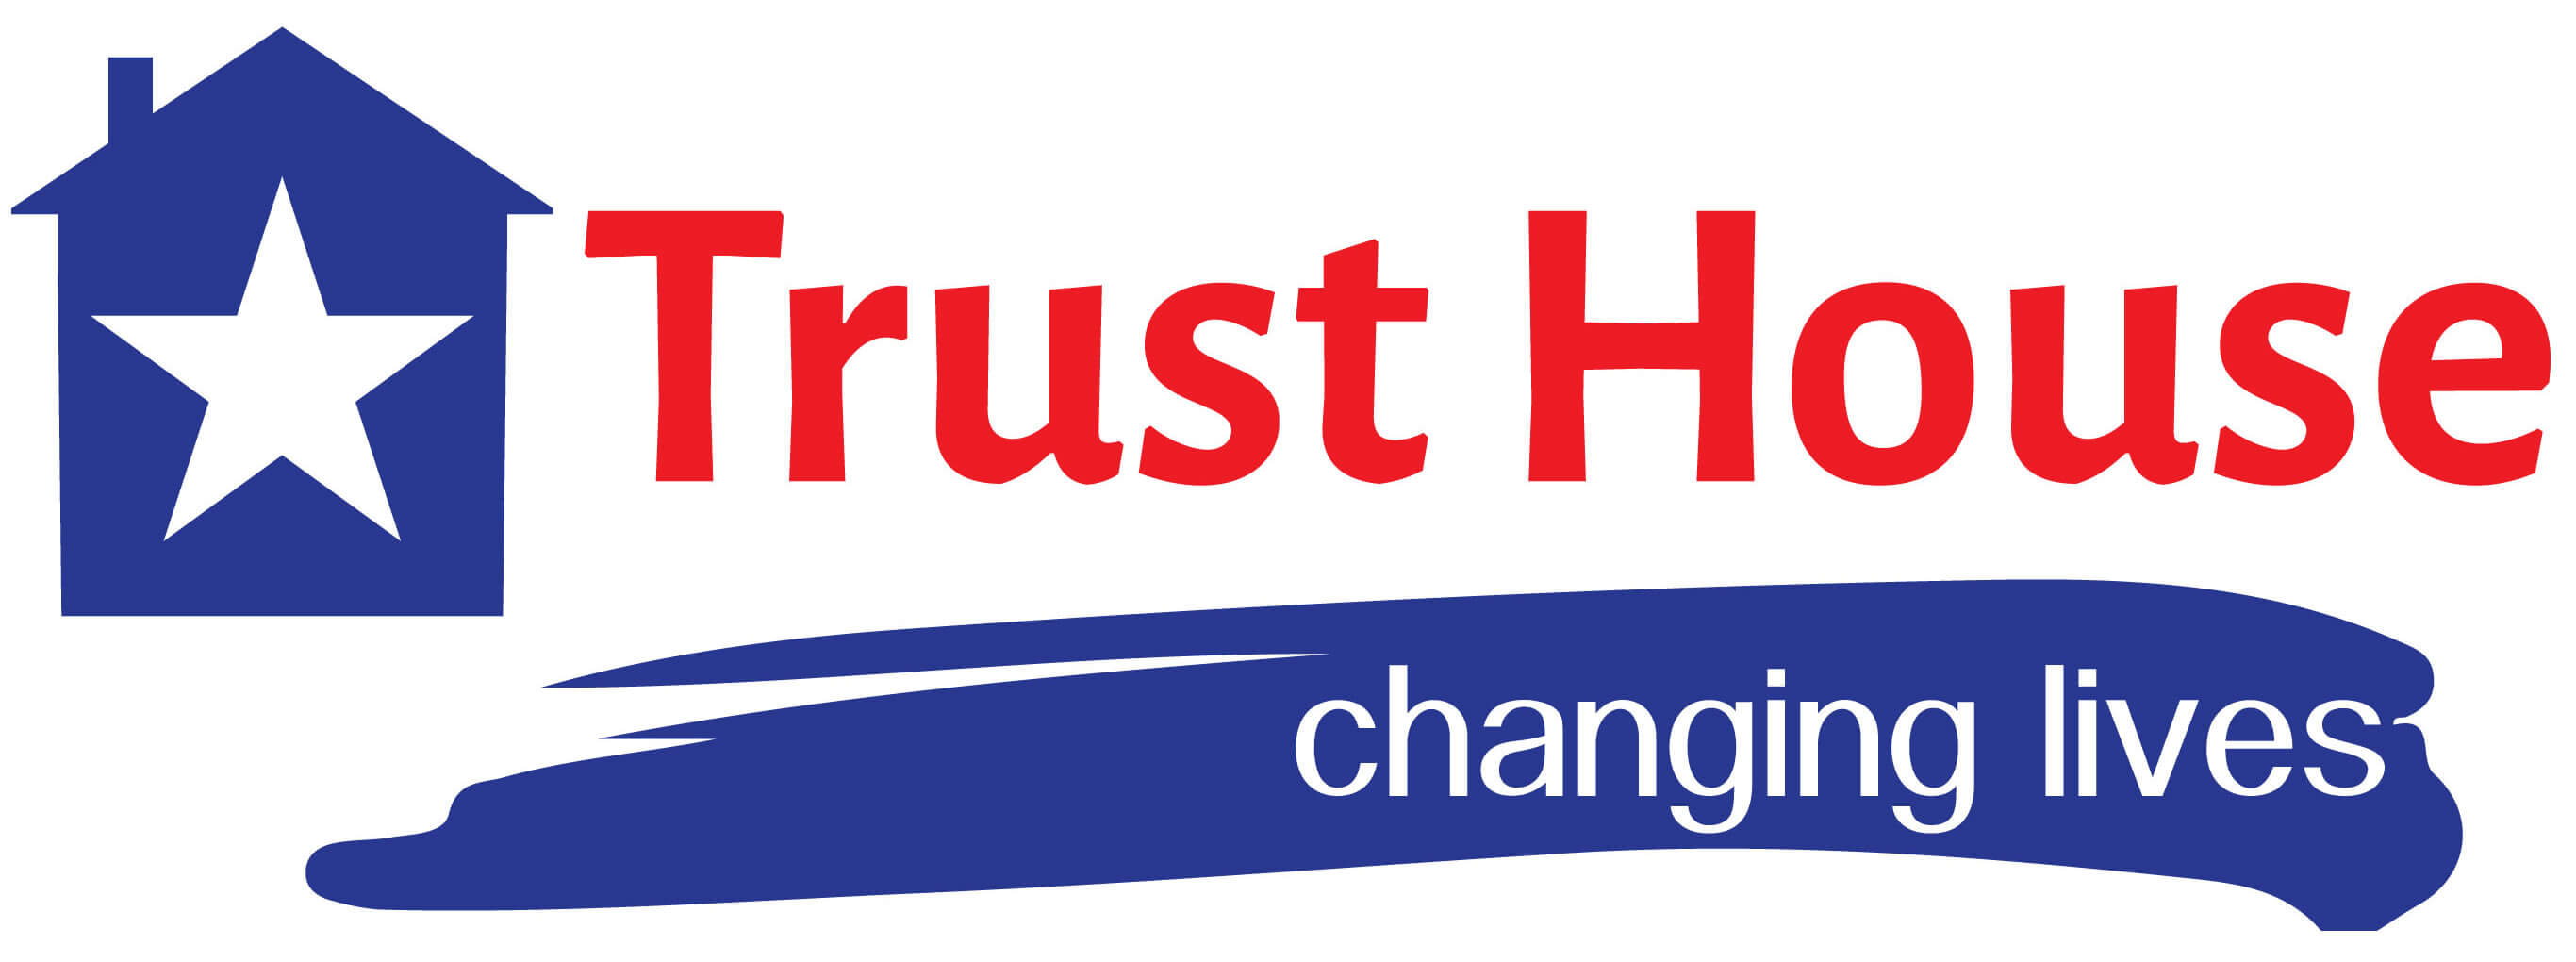 Trust House High res logo